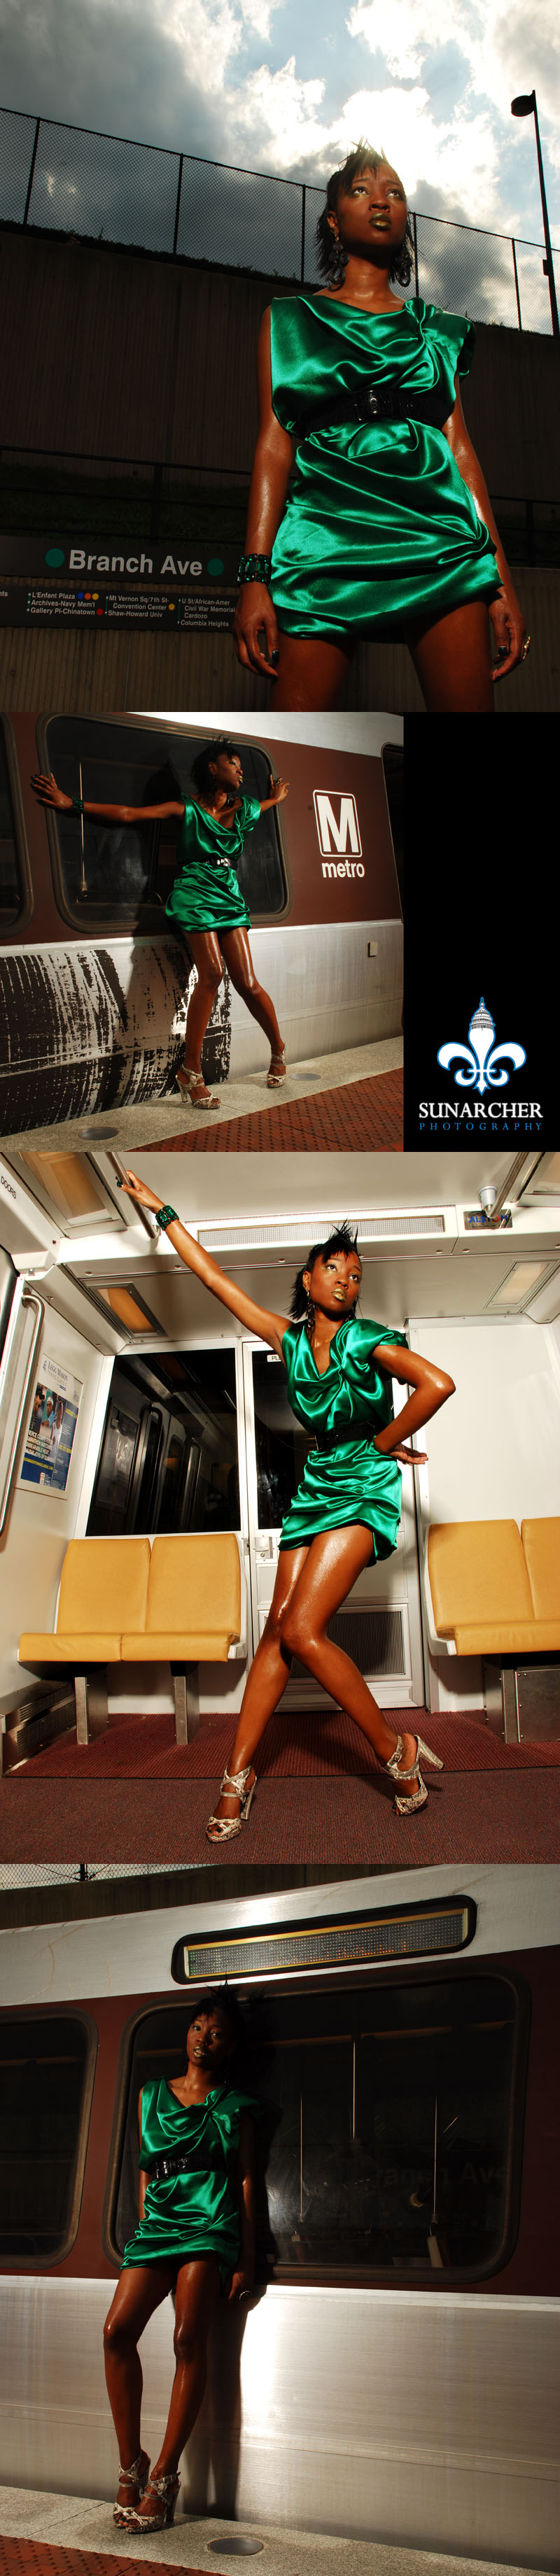 Male and Female model photo shoot of SunArcher Photography and Natavia in Branch Avenue Metro Station, Suitland, MD, makeup by The Masquerade Belle